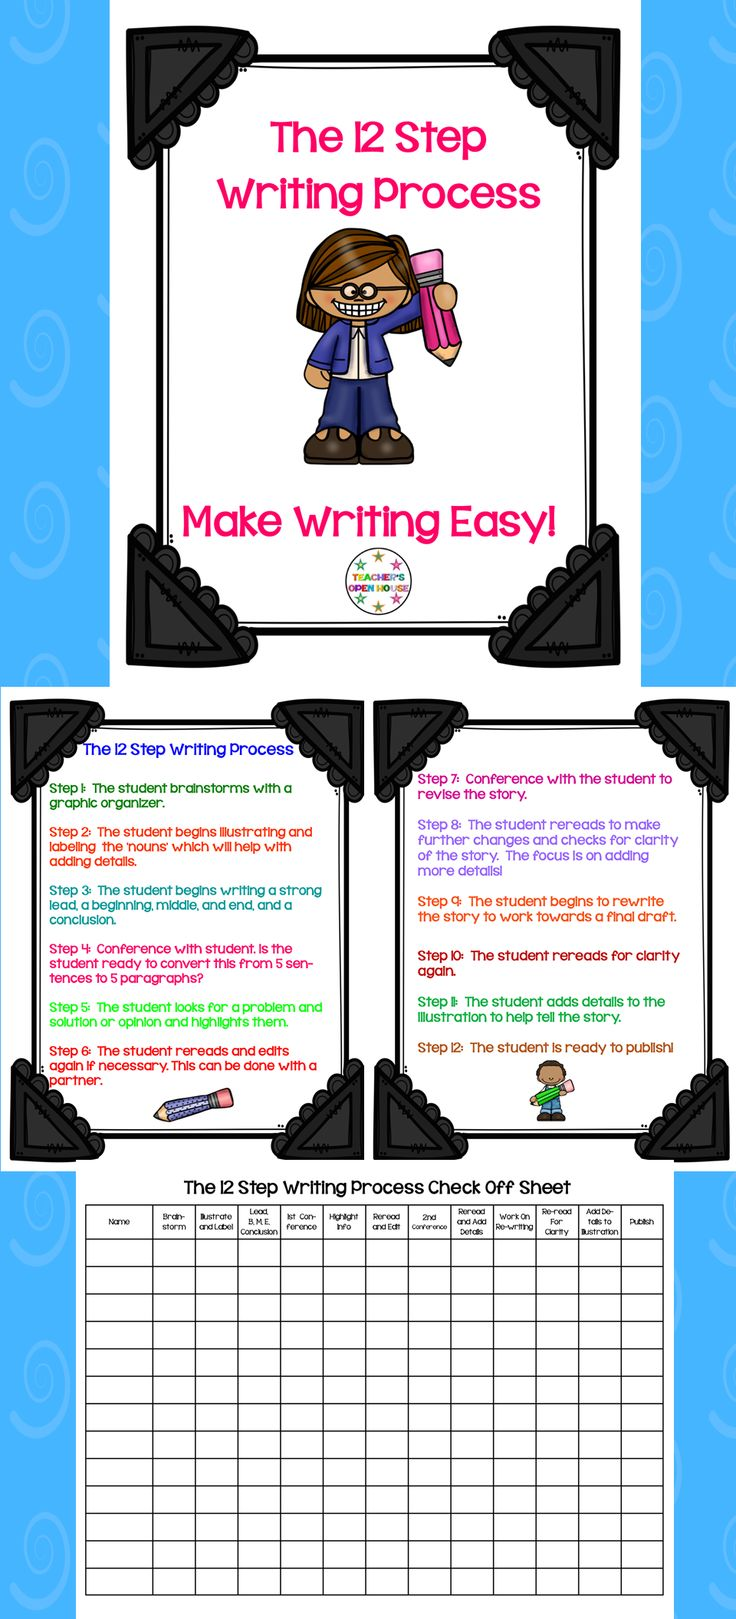 Make writing easy with this 'cliff note' version of the writing process! This pack provides 12 easy steps to making writing easy! You can apply it to any writing program! It works with all writing standards in any state! Great for first grade, second grade, third grade, fourth grade, and even fifth grade writing workshop!